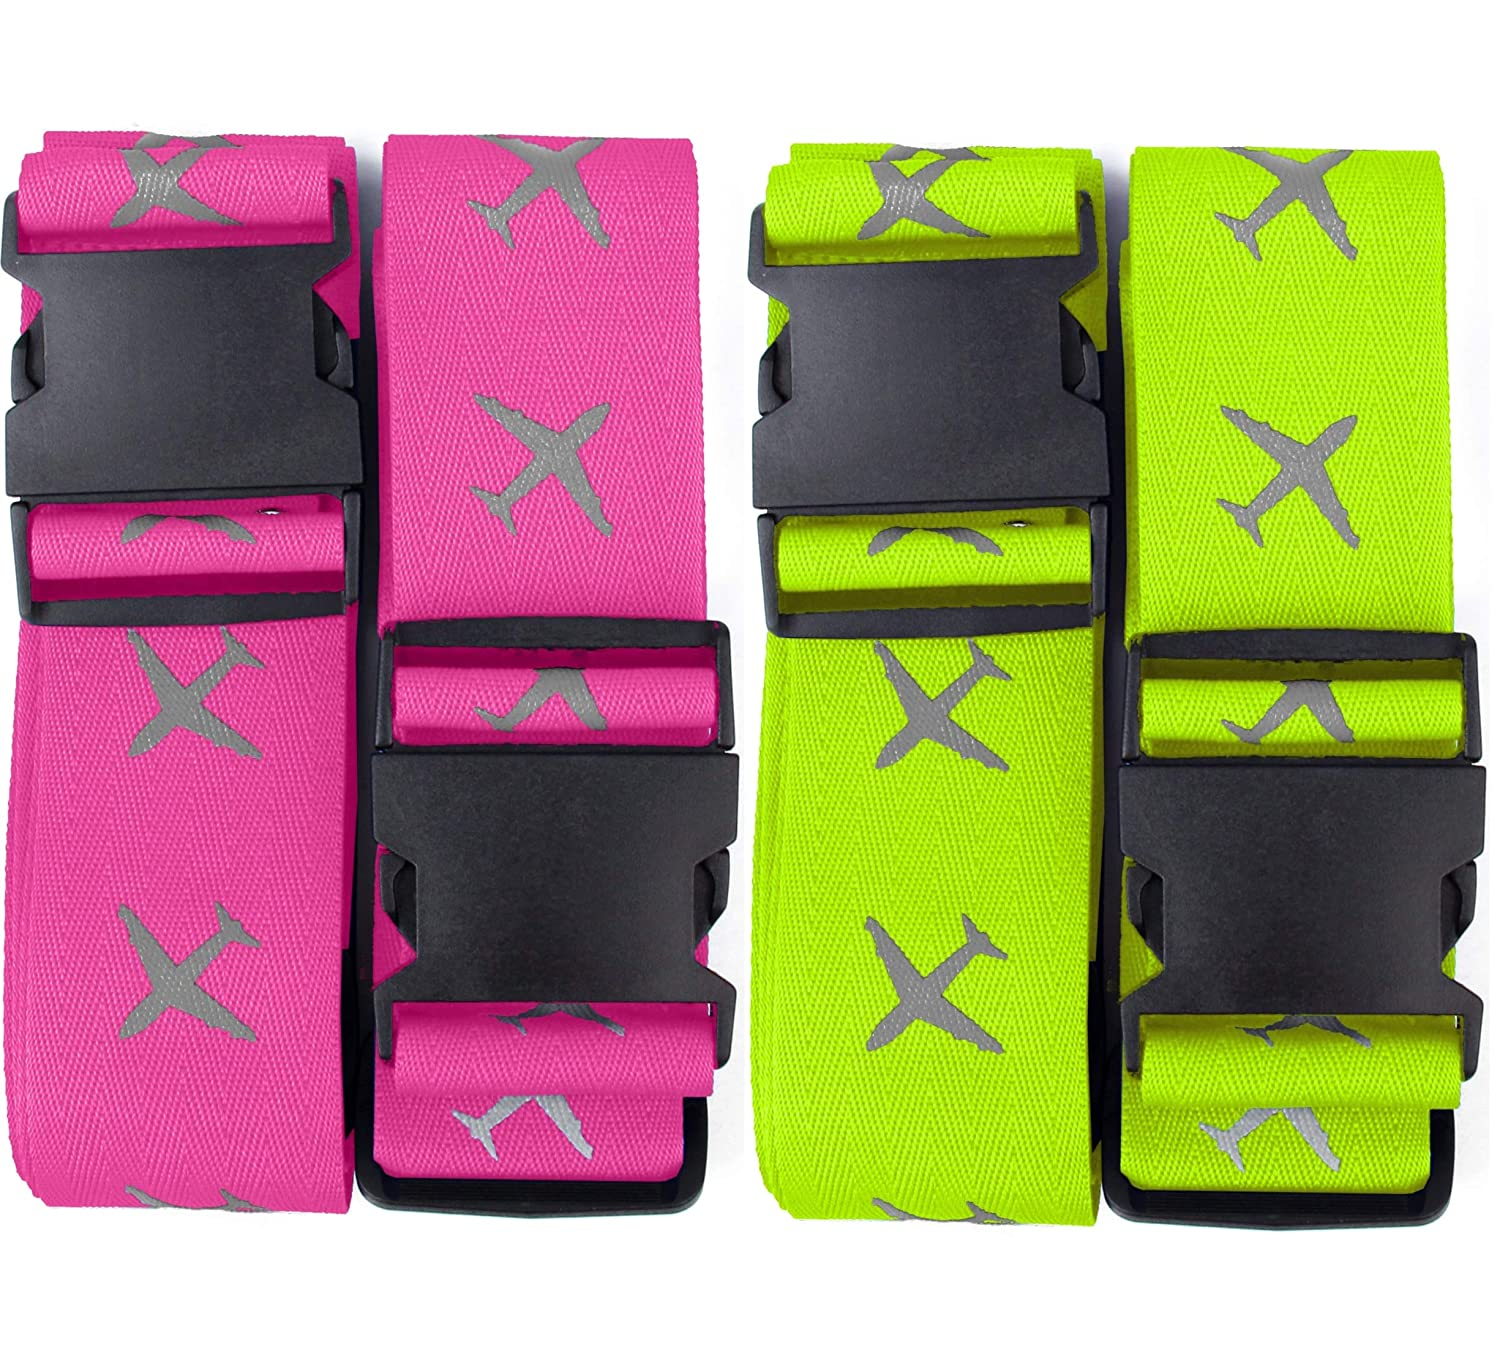 Luggage Straps Suitcase Travel Packing Belt Accessories with Name Tag 4 Pack 2 Pink /& 2 Green